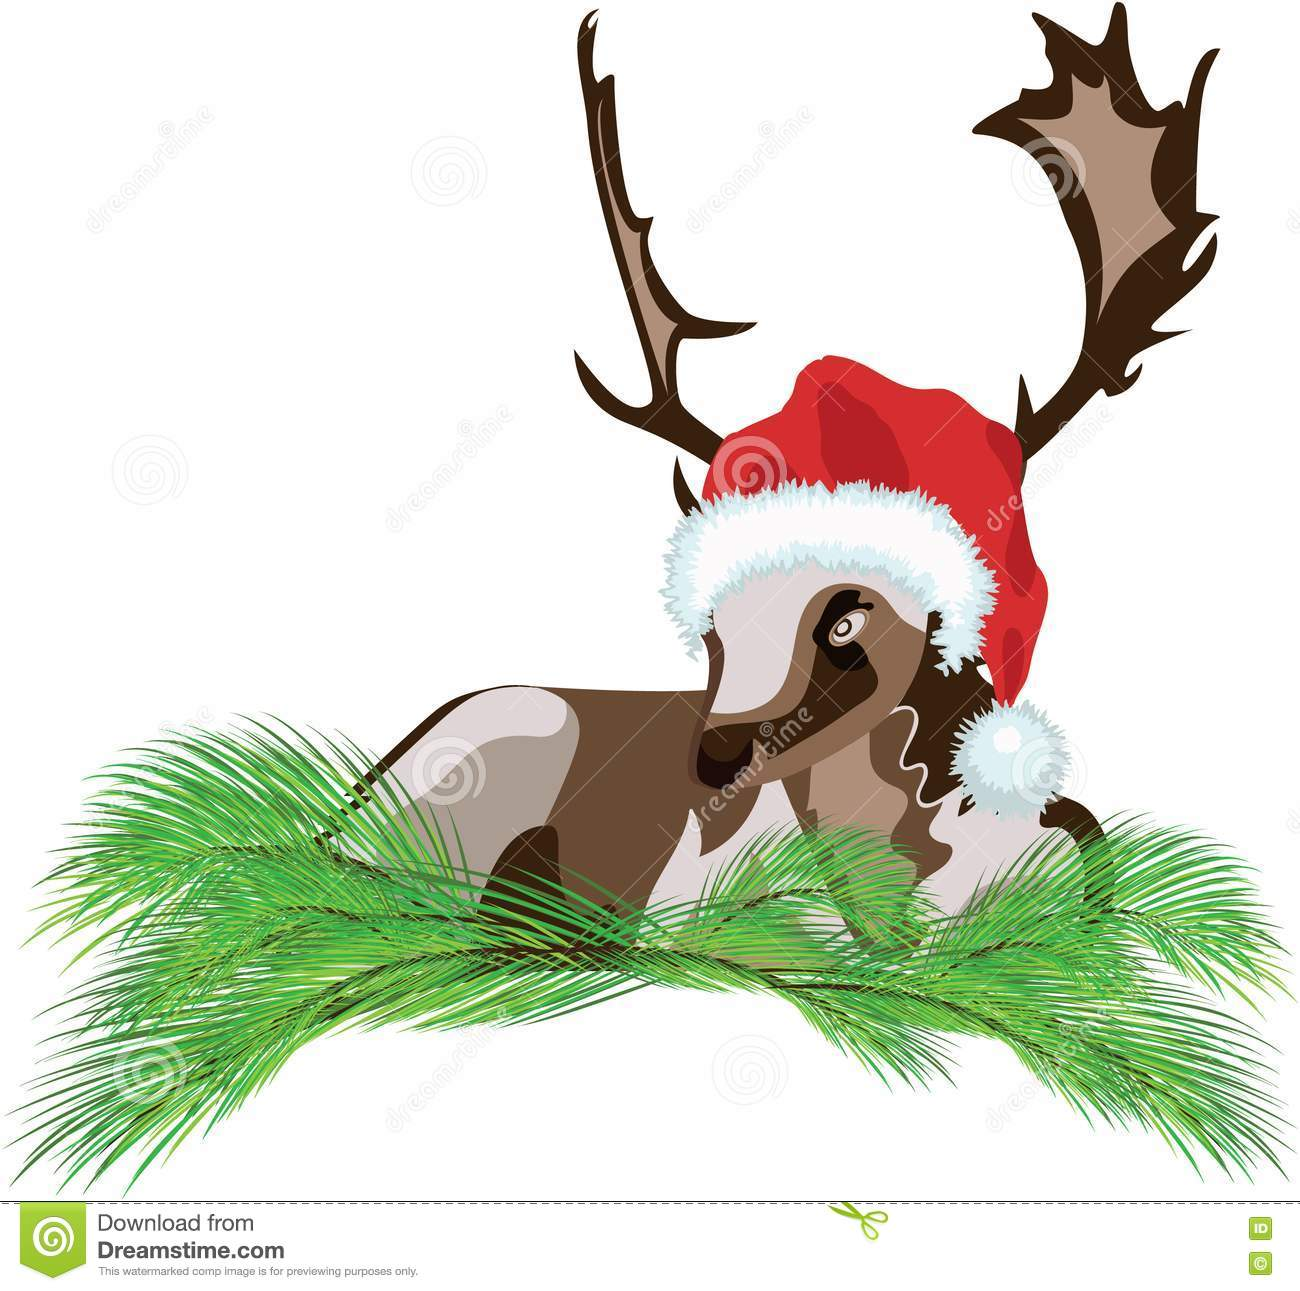 Christmas Lettering Badge On White Background: Deer Wearing A Santa Claus Hat Stock Vector